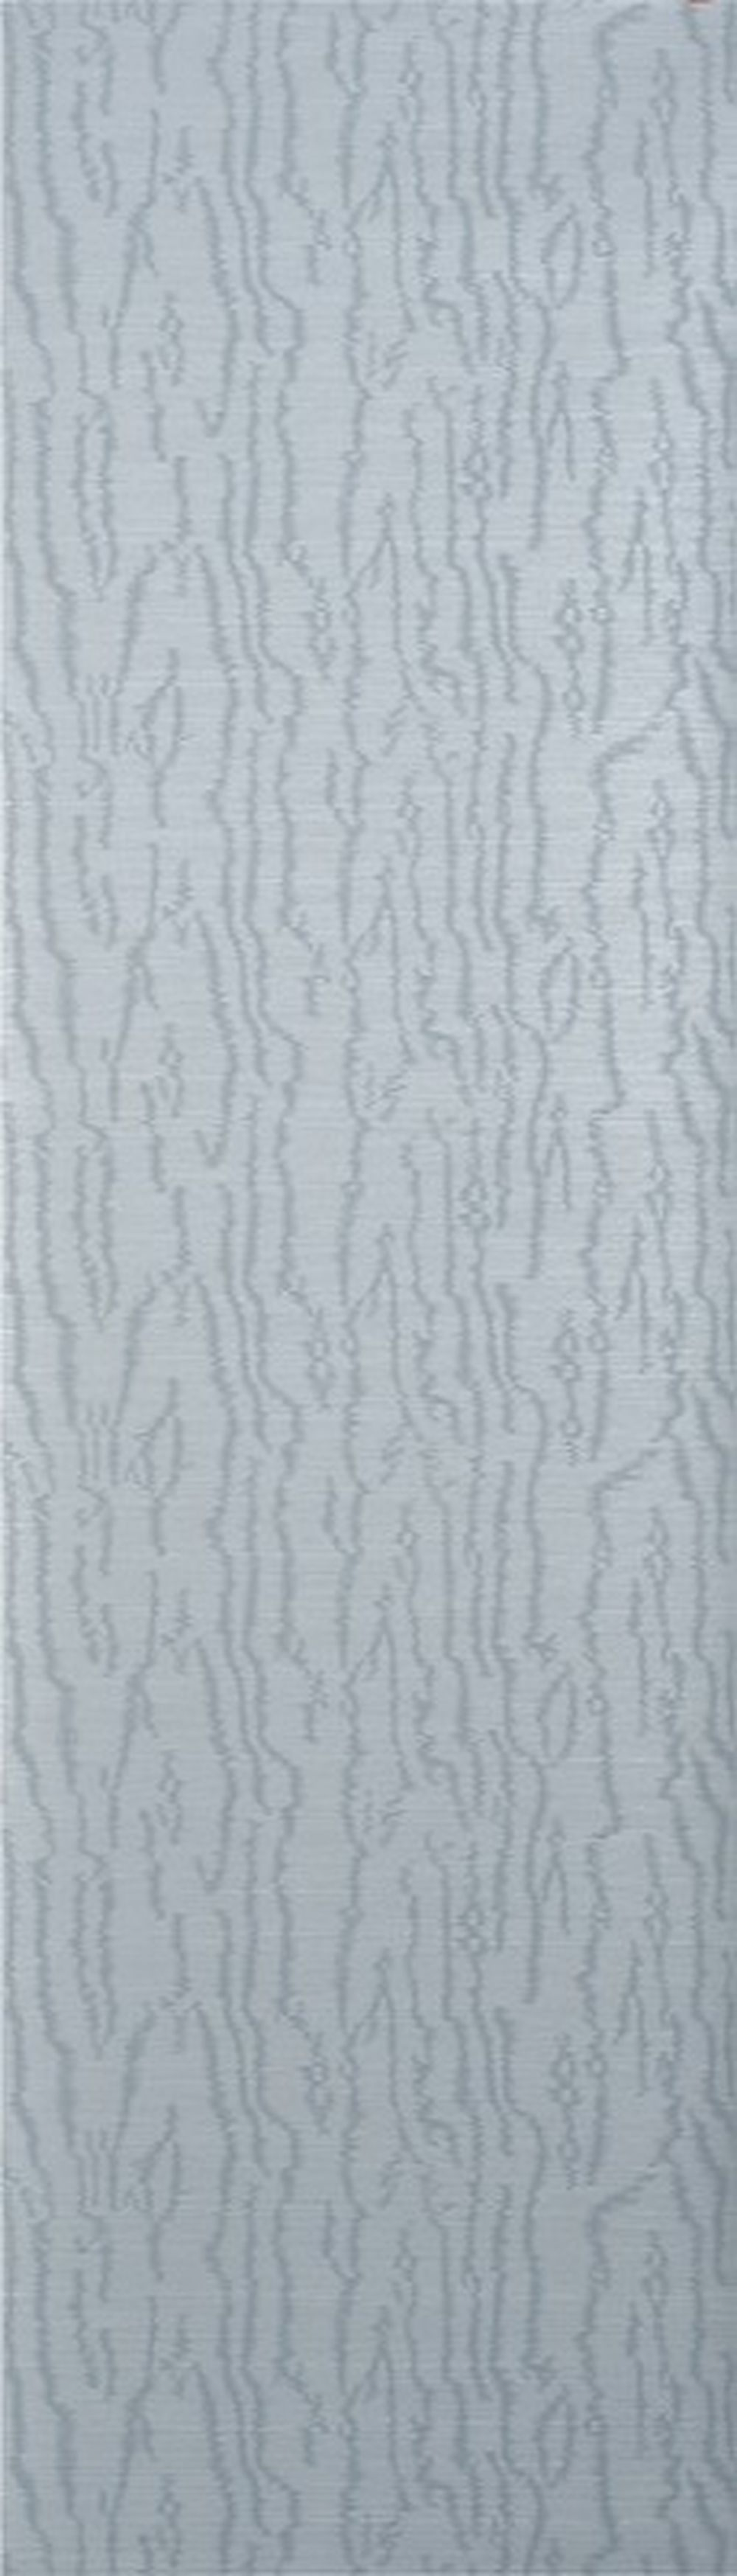 Photo of the fabric Trianon Wallpaper Mist swatch by Catherine Martin by Mokum. Use for Wall Covering. Style of Abstract, Decorative, Pattern, Texture